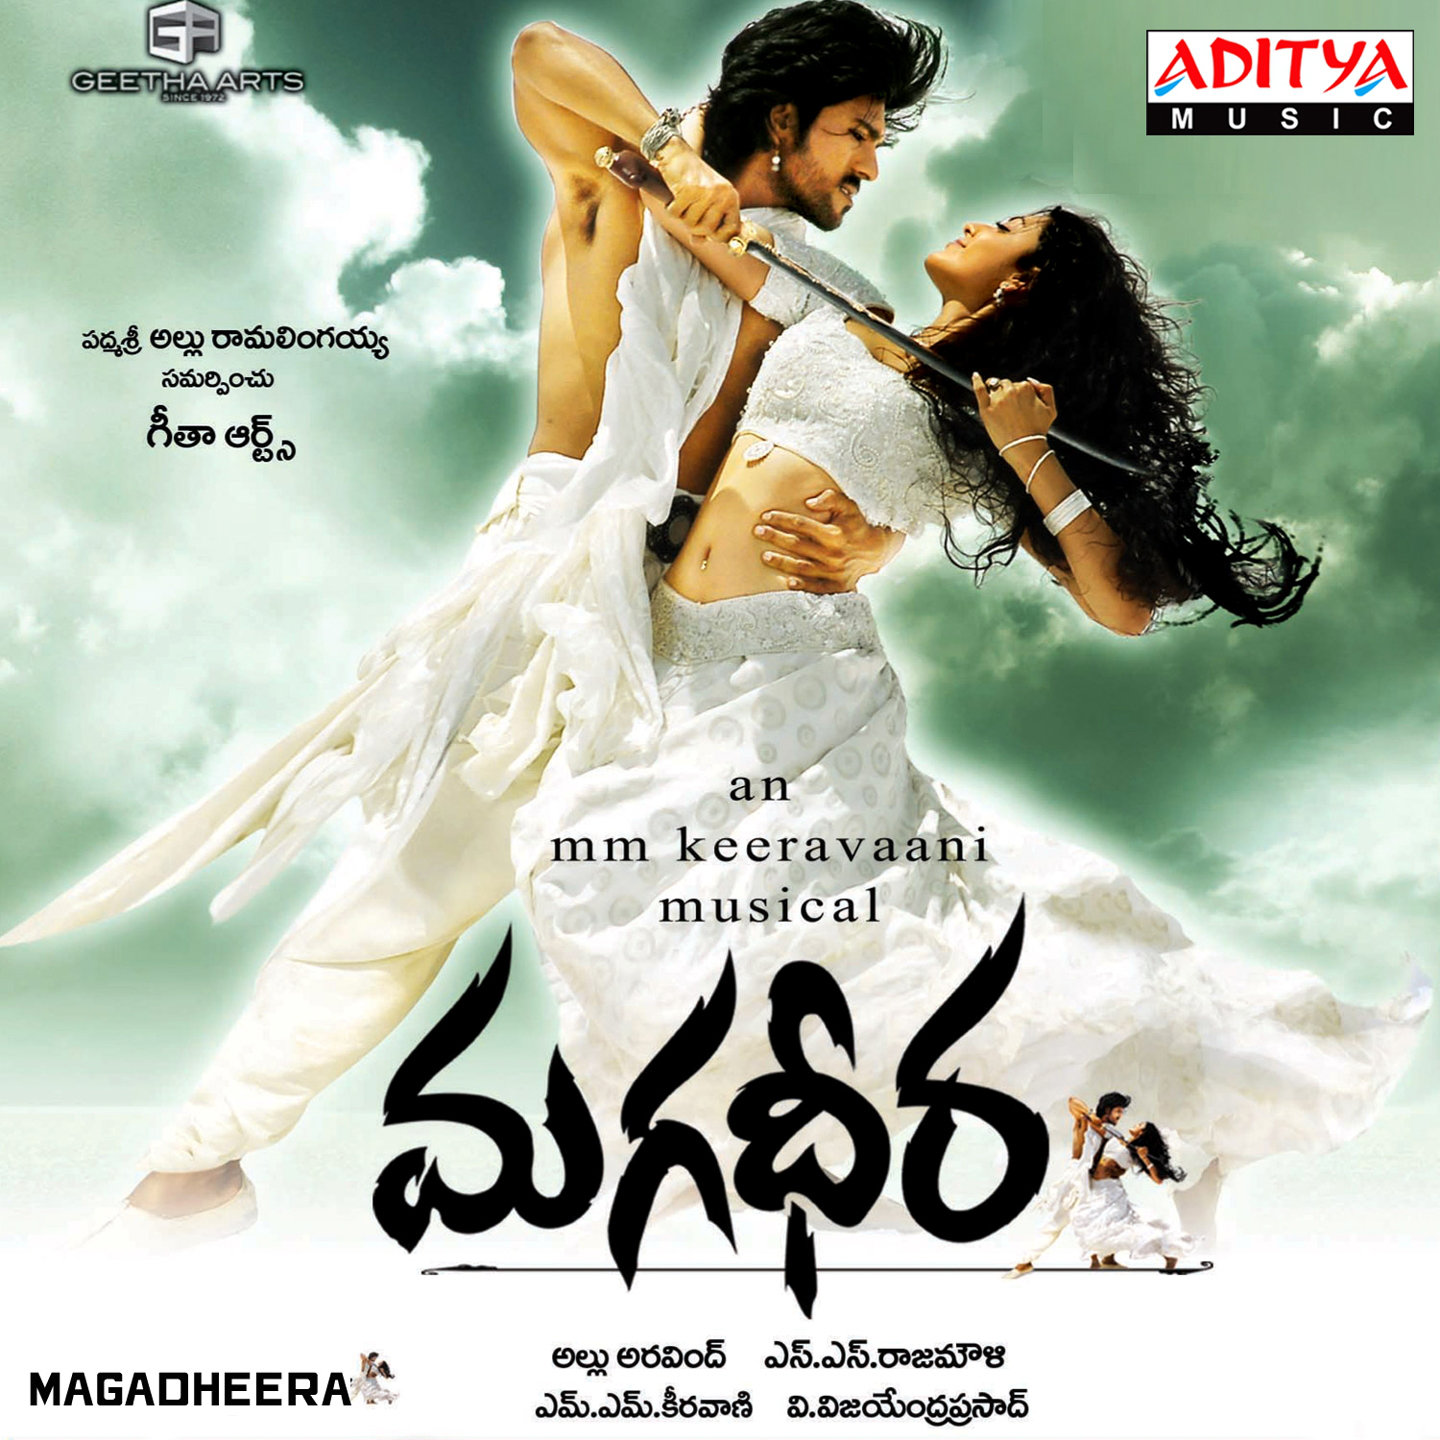 magadheera mobile movie in hindi dubbed free download / strike the